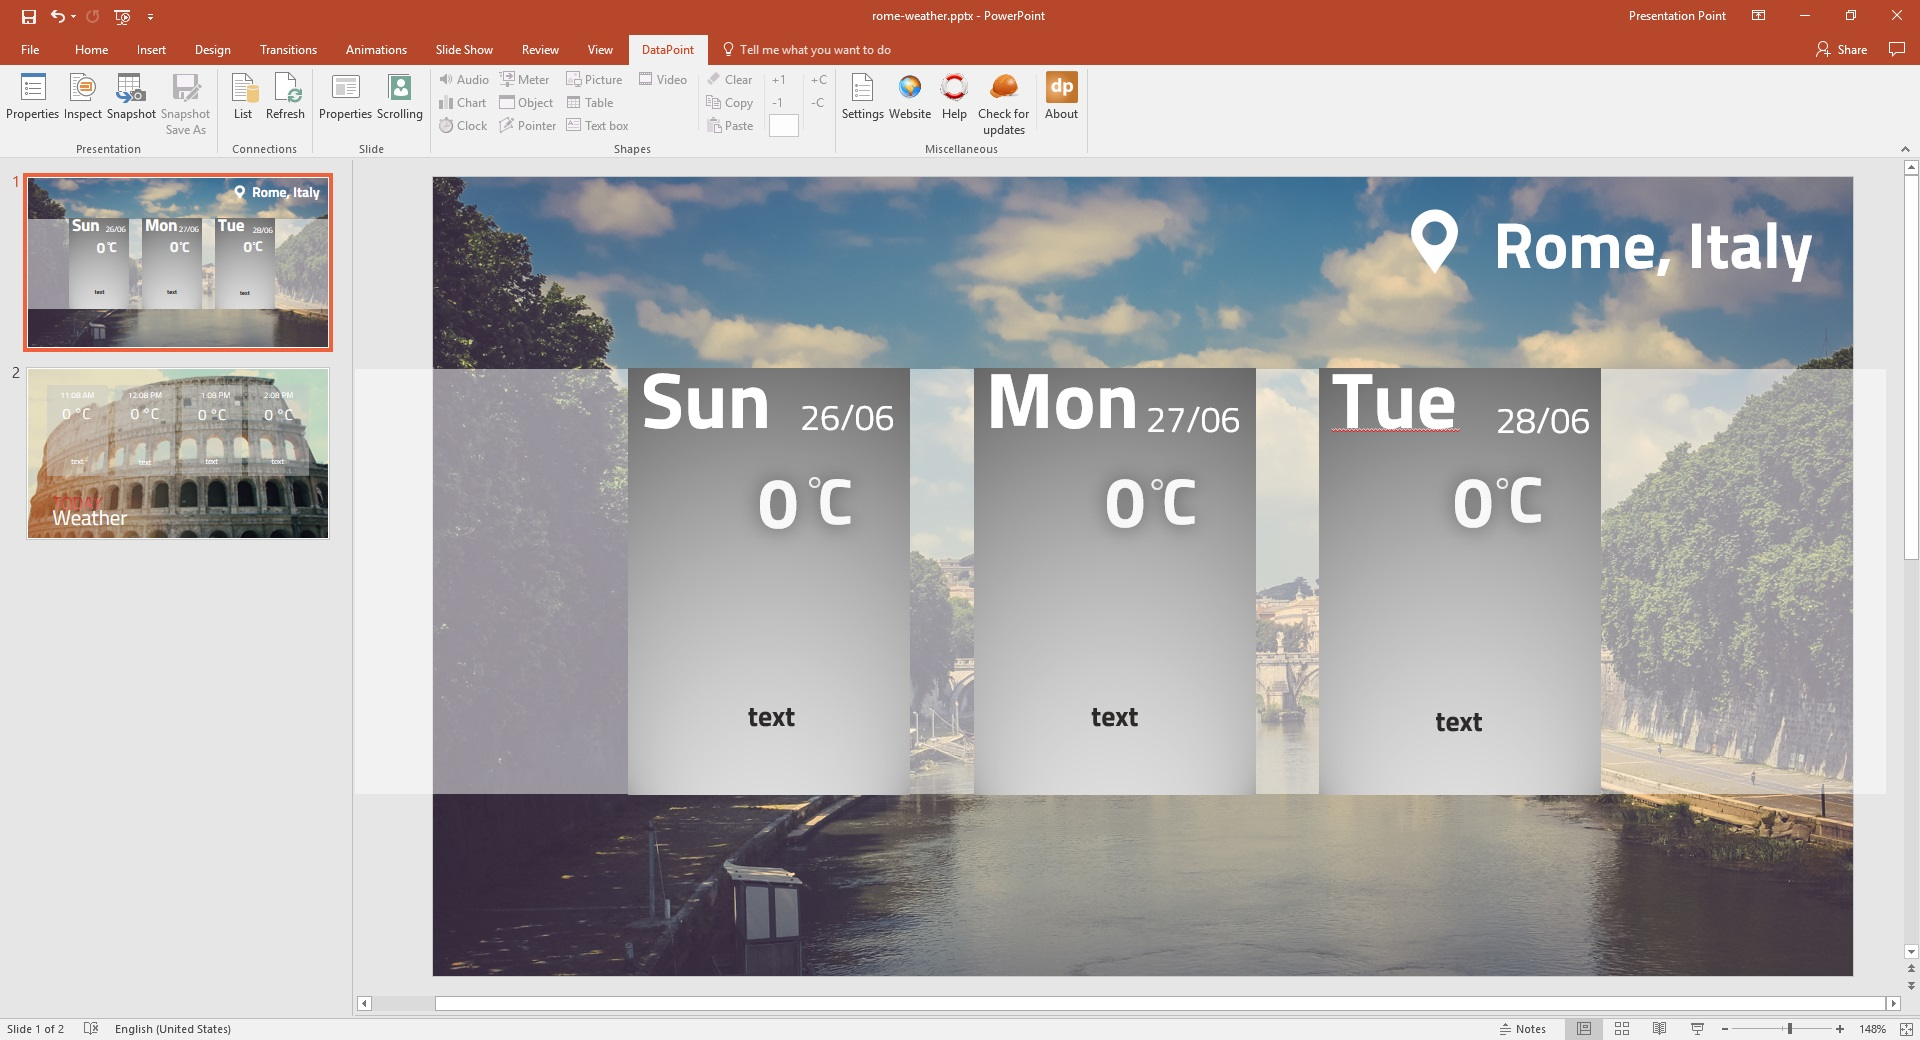 powerpoint presentation design for weather display